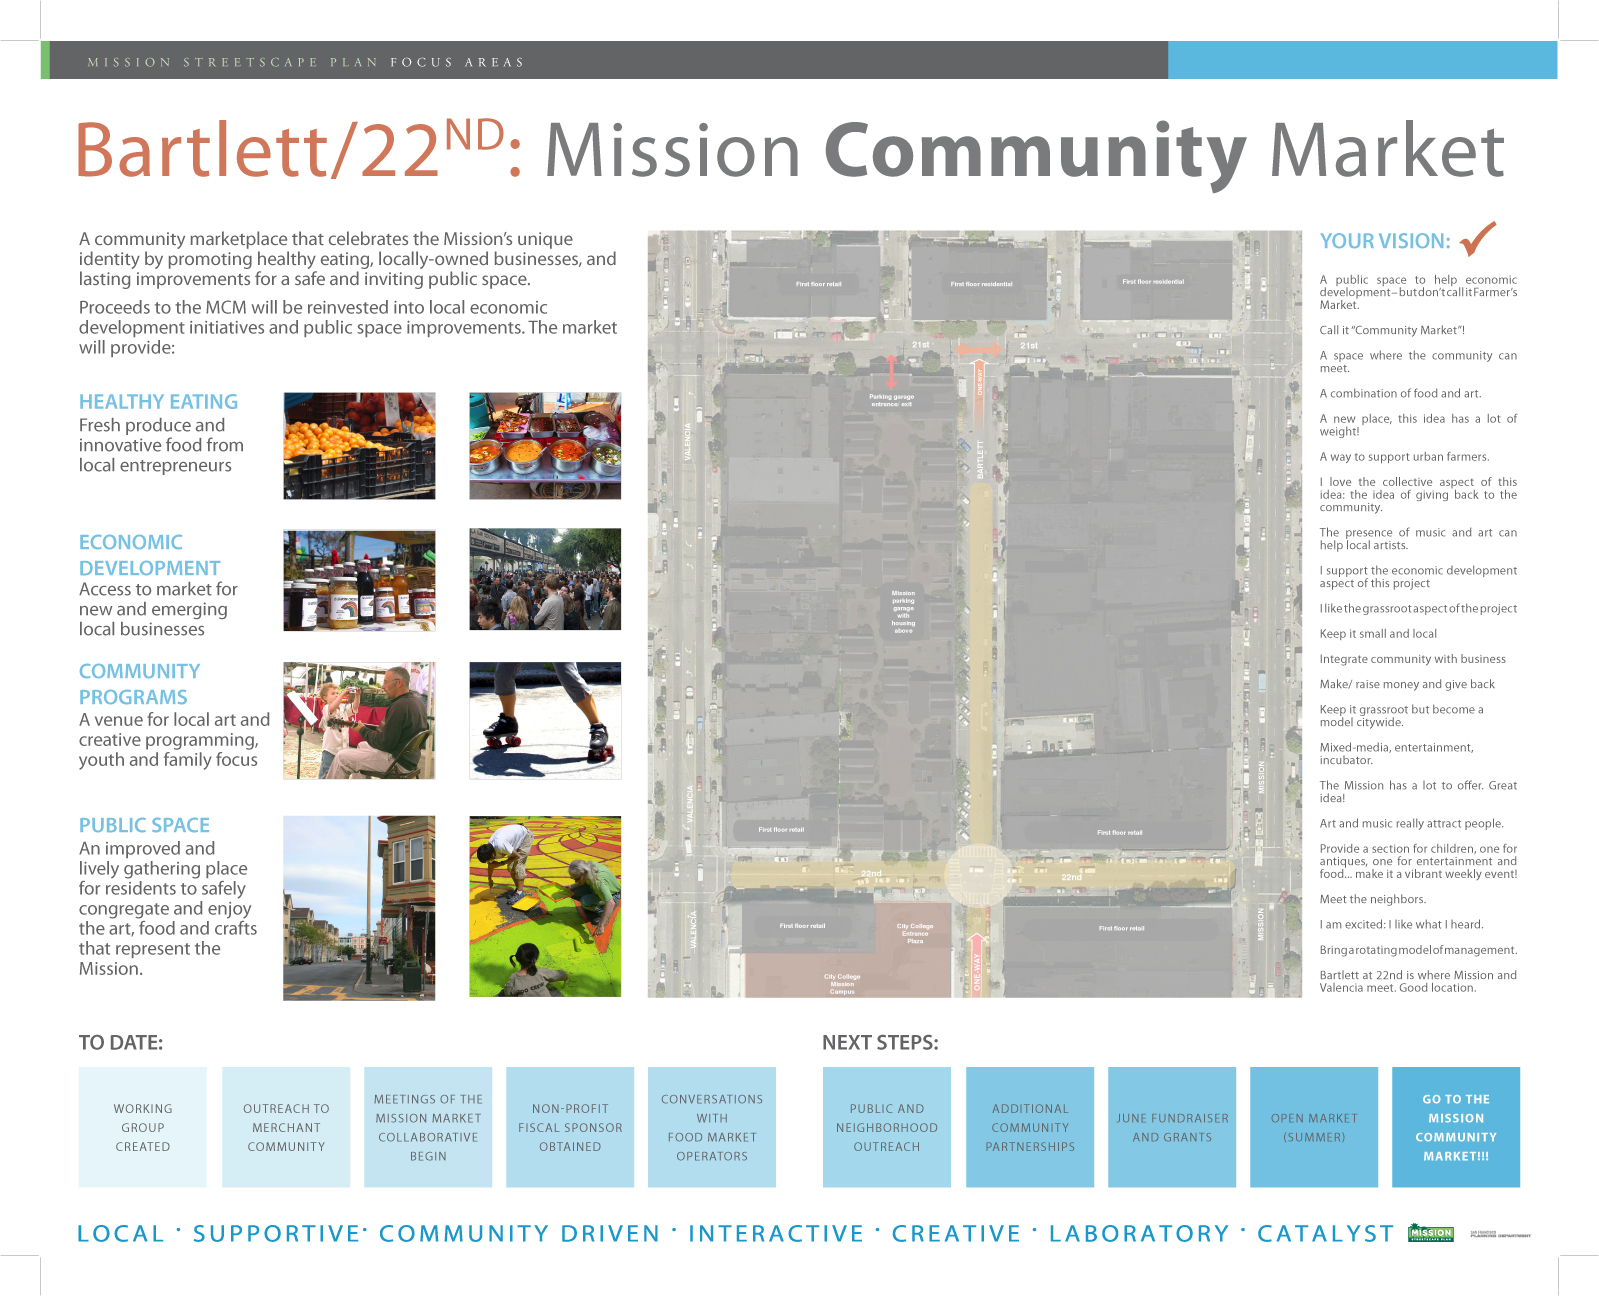 Updates on Bartlett Farmers Market and Dolores Park